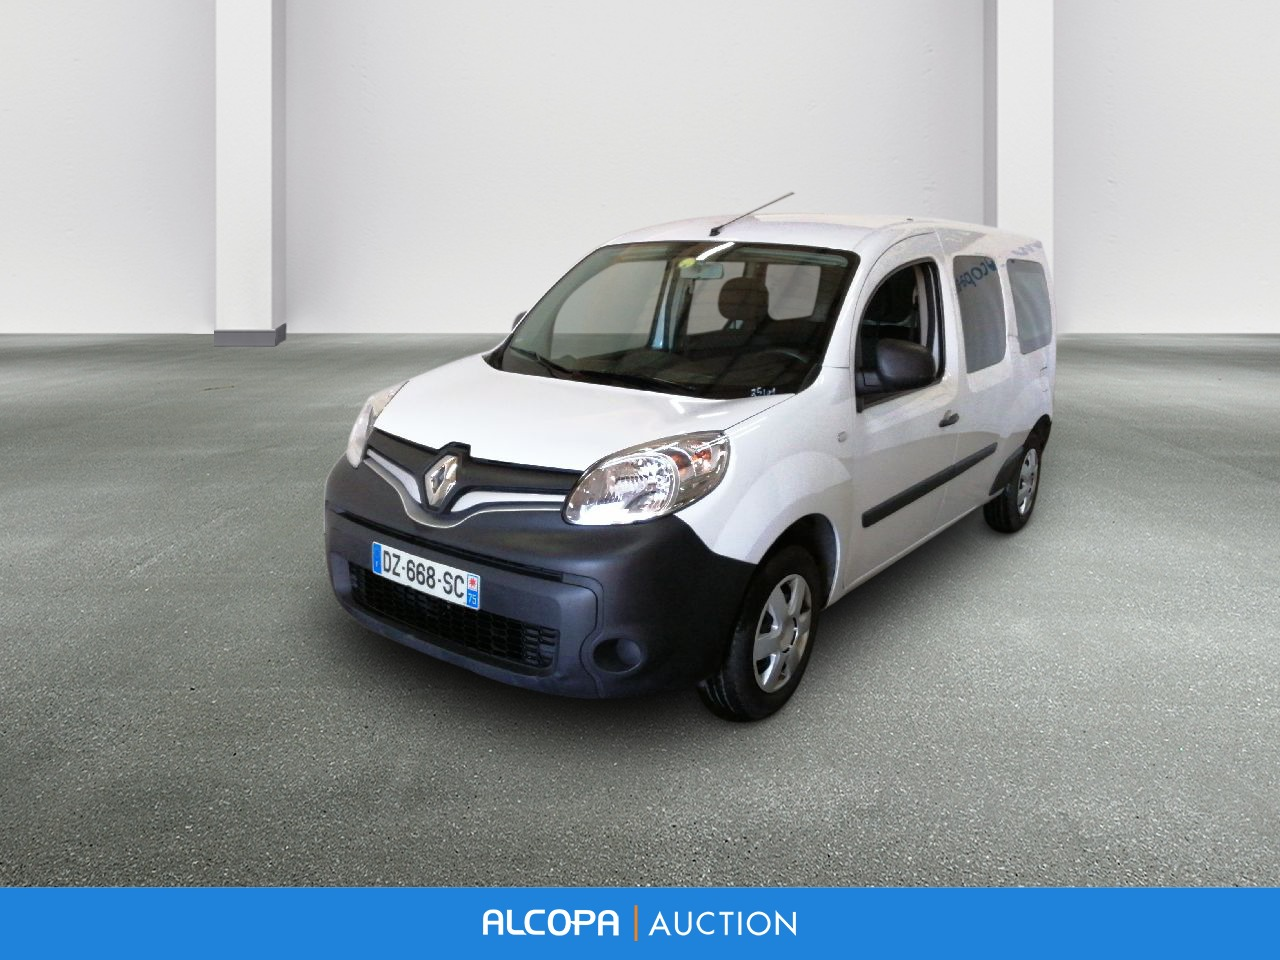 renault kangoo express kangoo express ca maxi 1 5 dci 110 energy grand confort alcopa auction. Black Bedroom Furniture Sets. Home Design Ideas